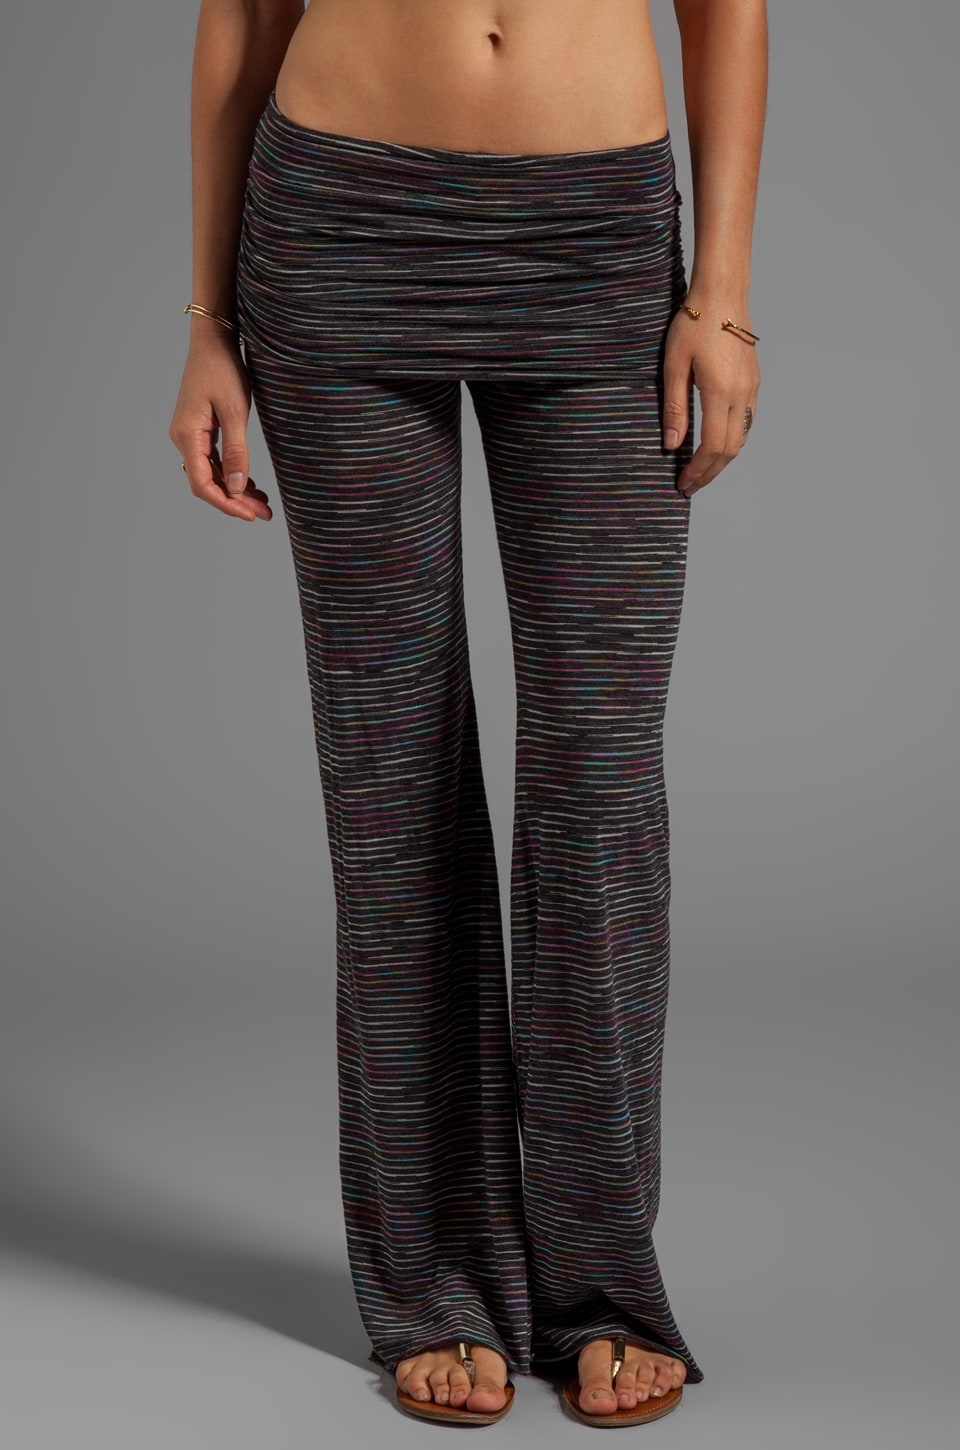 Michael Lauren Costa Bell Pant w/ Fold Over Waistband in Black